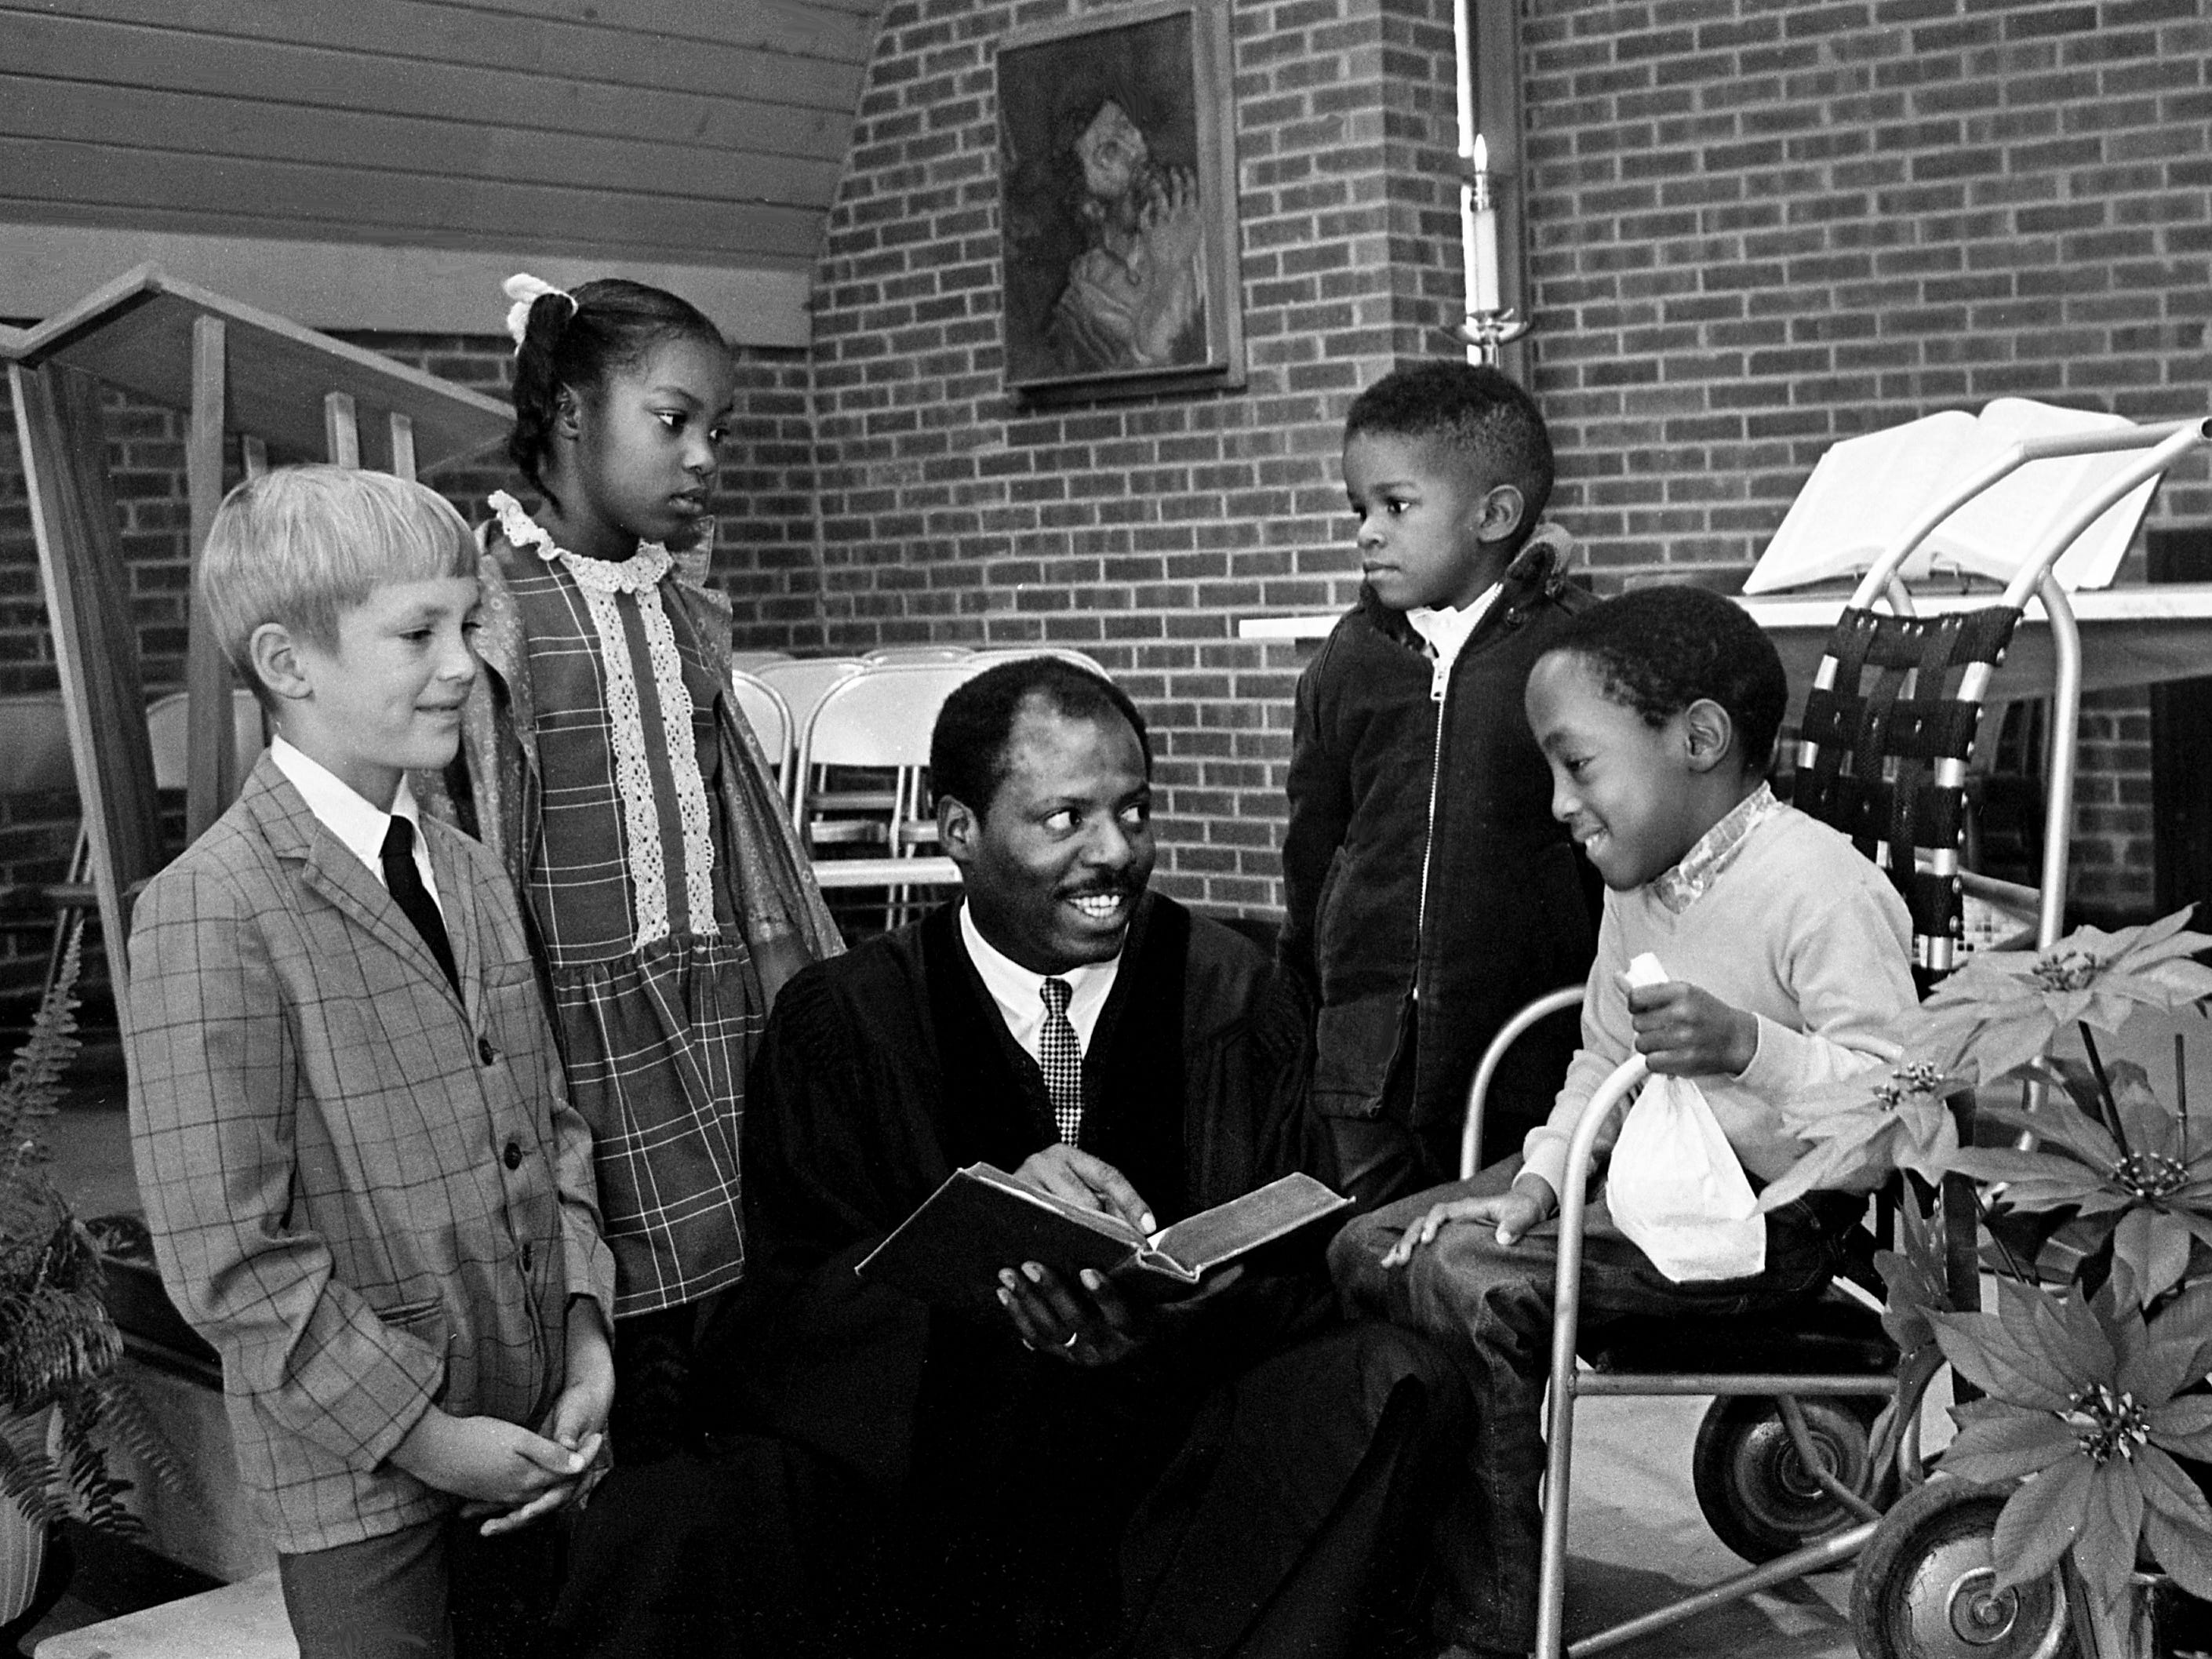 The Rev. H. Berman Taylor, center, pastor of the Howard Congregational Church (United Church of Christ), tells the Christmas story to children of the church school and children's choir Dec. 22, 1968. Listeners are Brooks Egerton, left, Regina Hall, Hycel Taylor III and Keith Blakely.